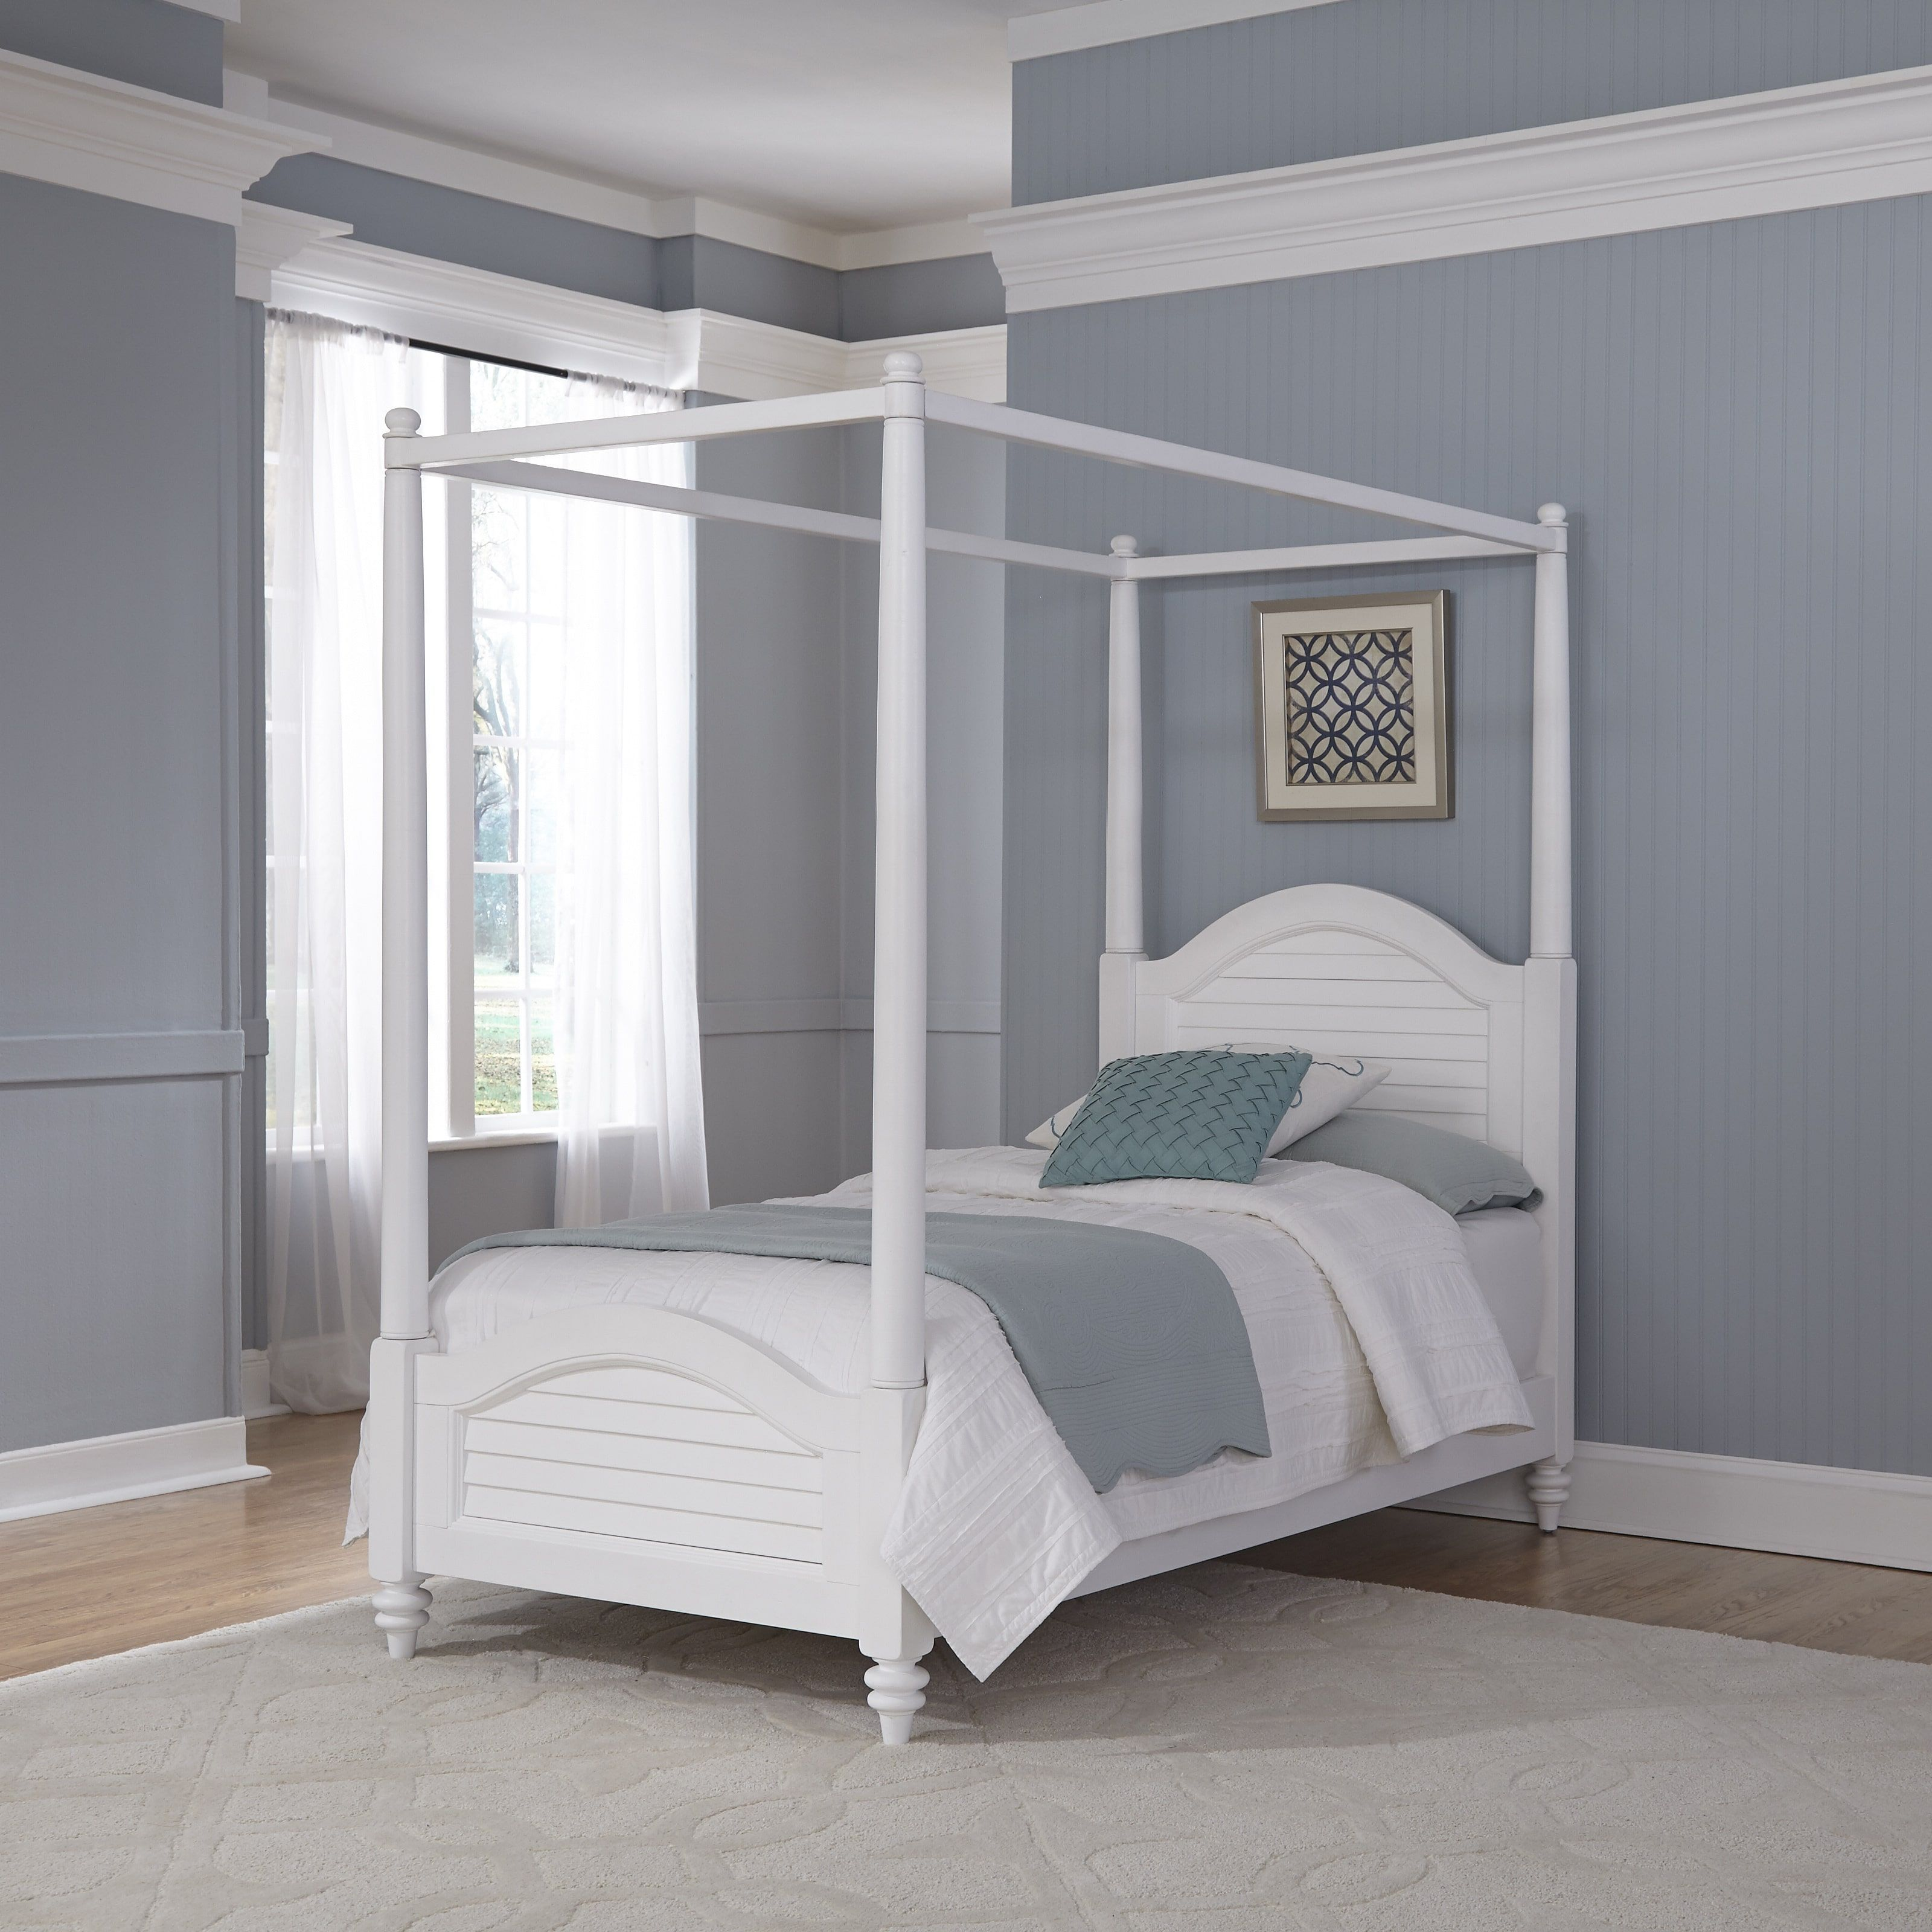 Bermuda Twin Canopy Bed by Home Styles (Espresso - Espresso Finish/Brown Finish) & Bermuda Twin Canopy Bed by Home Styles (Espresso - Espresso Finish ...